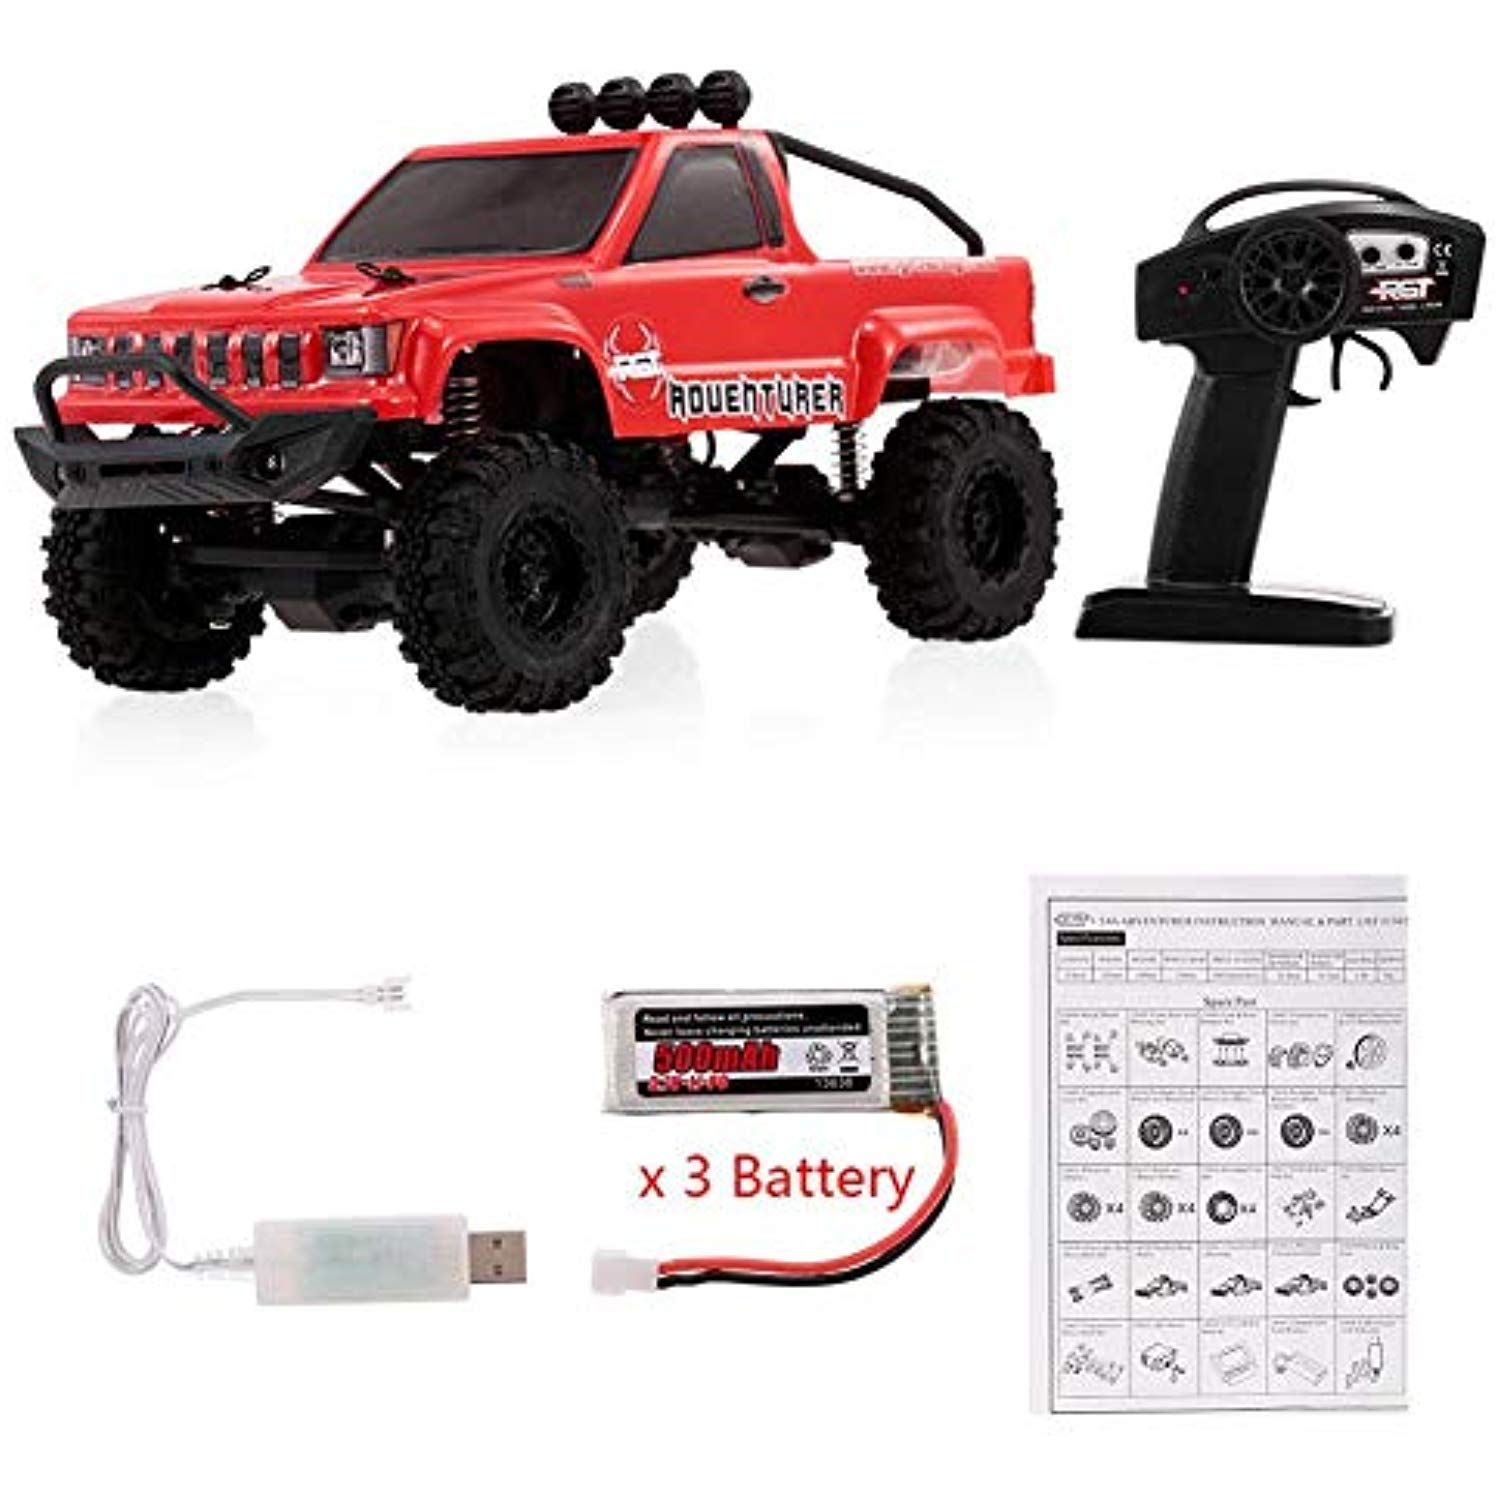 Jeep Epic Truck Rc Car Toy For Kids Ford Raptor F 150 Red With Rgt